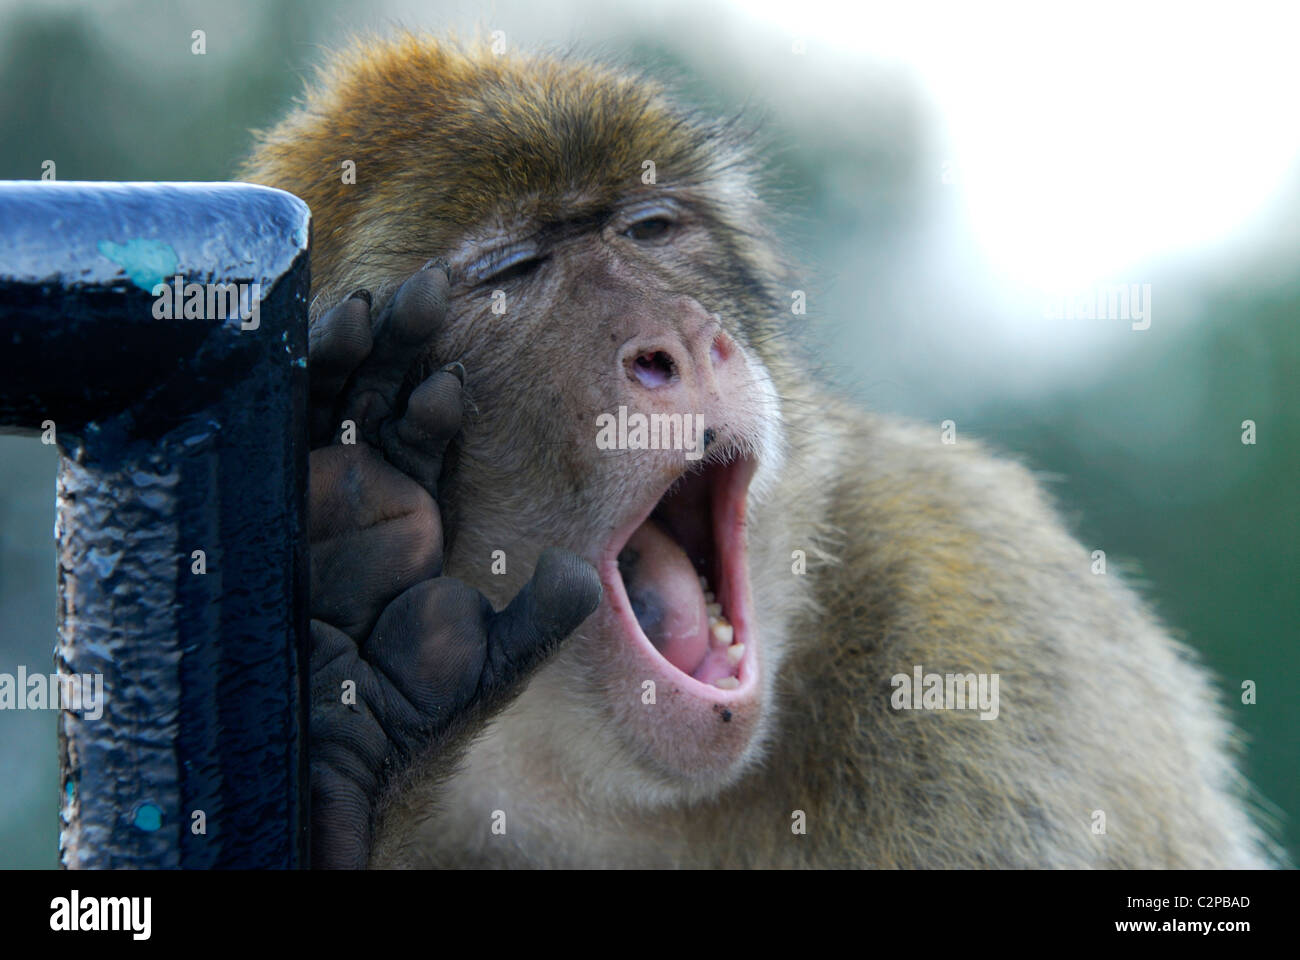 Adult Barbary Macaque with hand on it's cheek howling - Stock Image